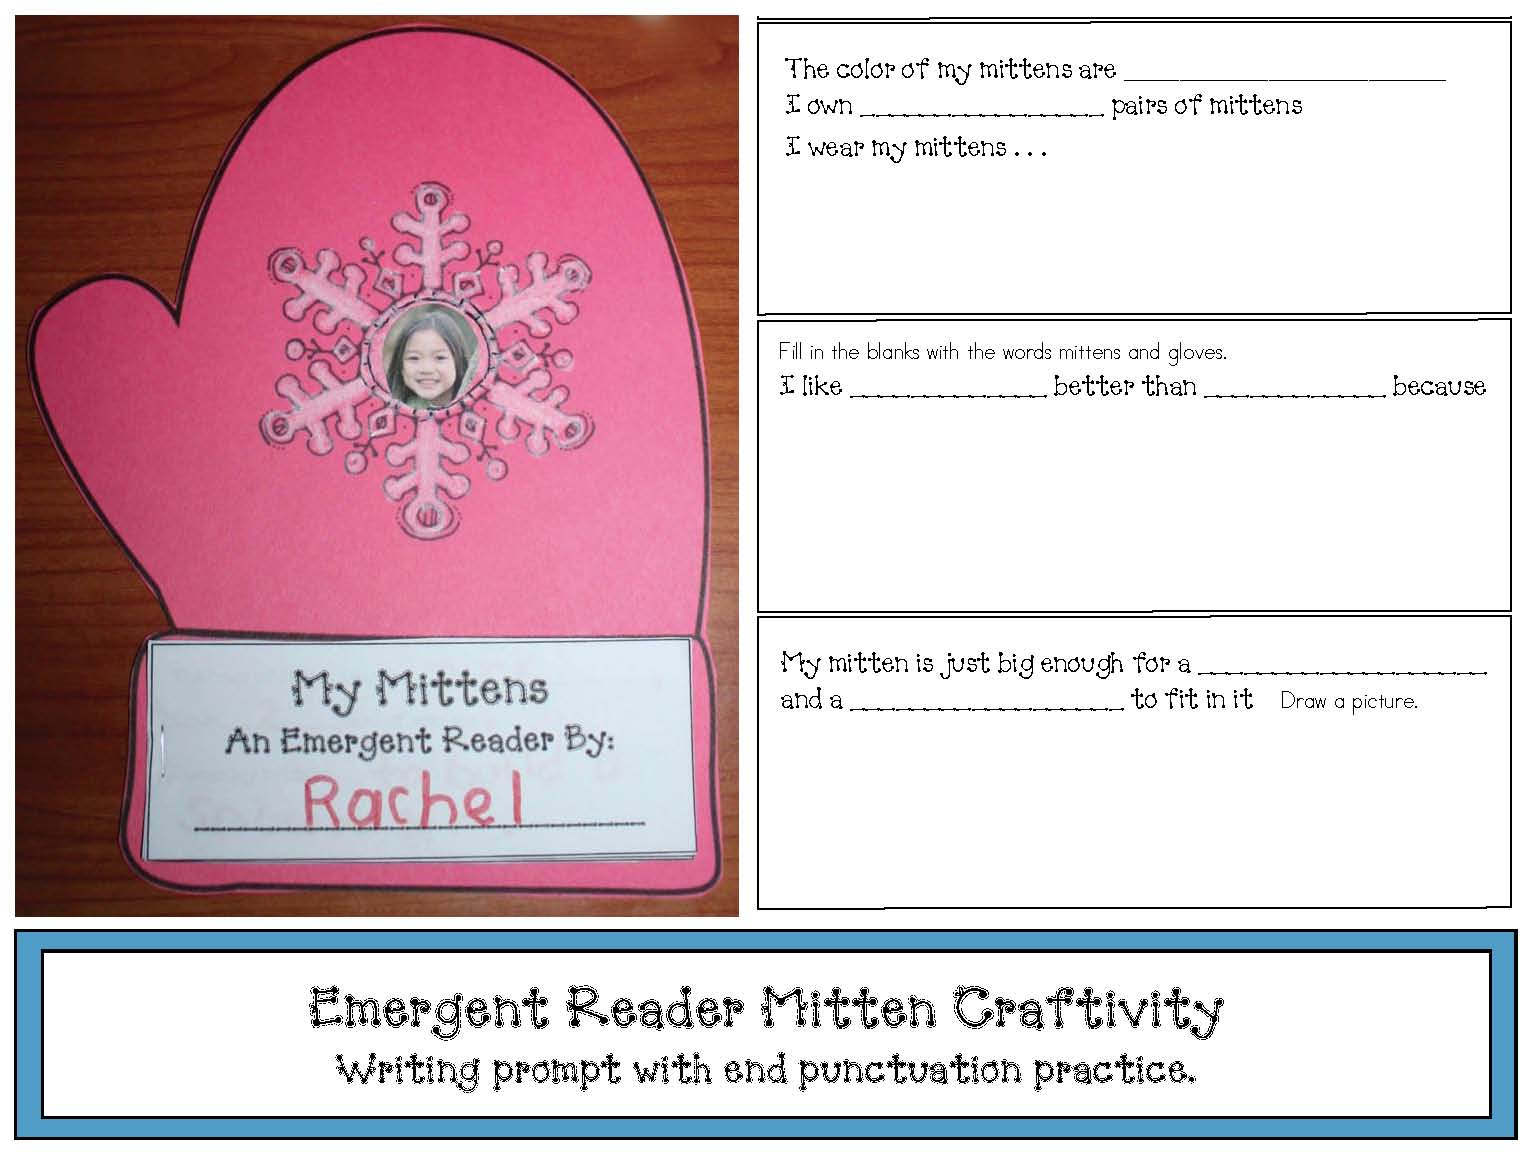 mitten activities, mitten crafts, mitten emergent reader, activities to go with The Mitten, emergent reader booklets, winter emergent readers, january bulletin board ideas, mitten bulletin boards, graphing activities, mitten graphing